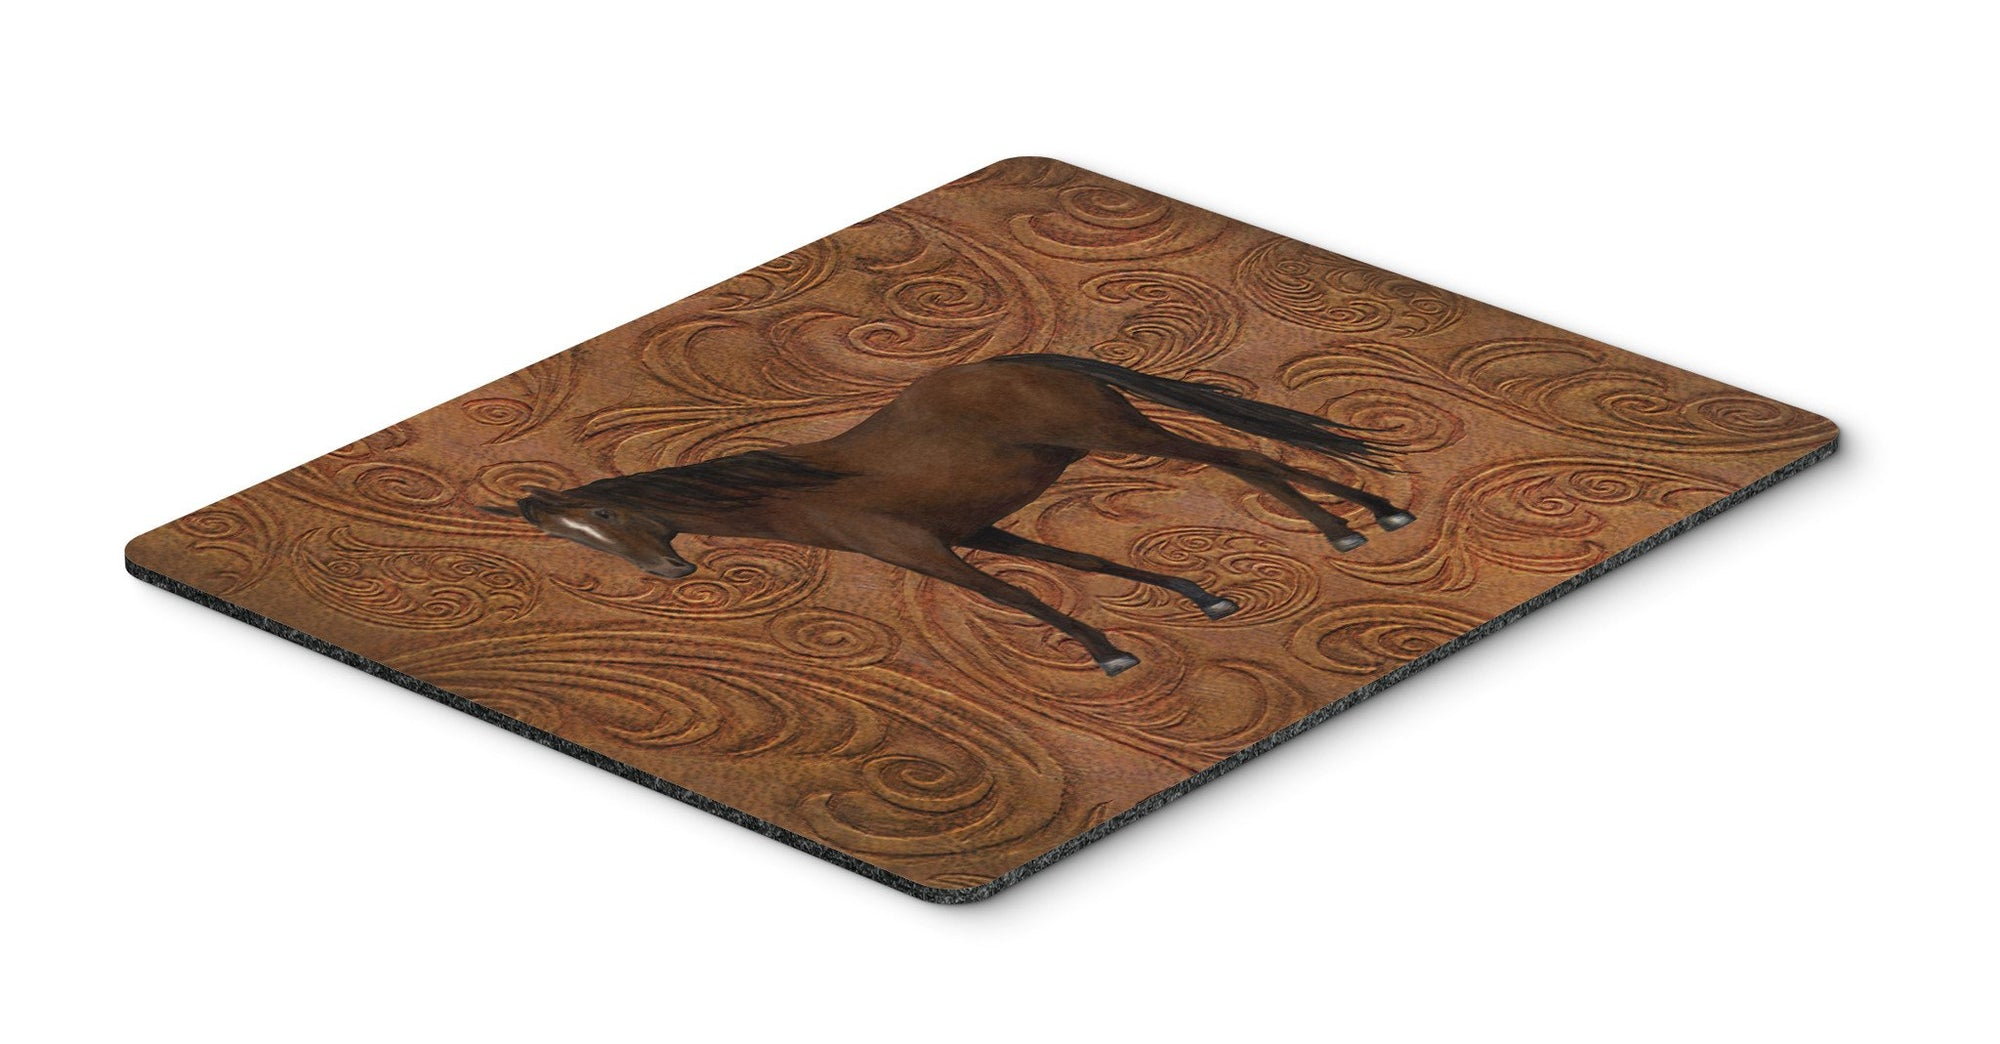 Horse Mouse Pad, Hot Pad or Trivet SB3066MP by Caroline's Treasures